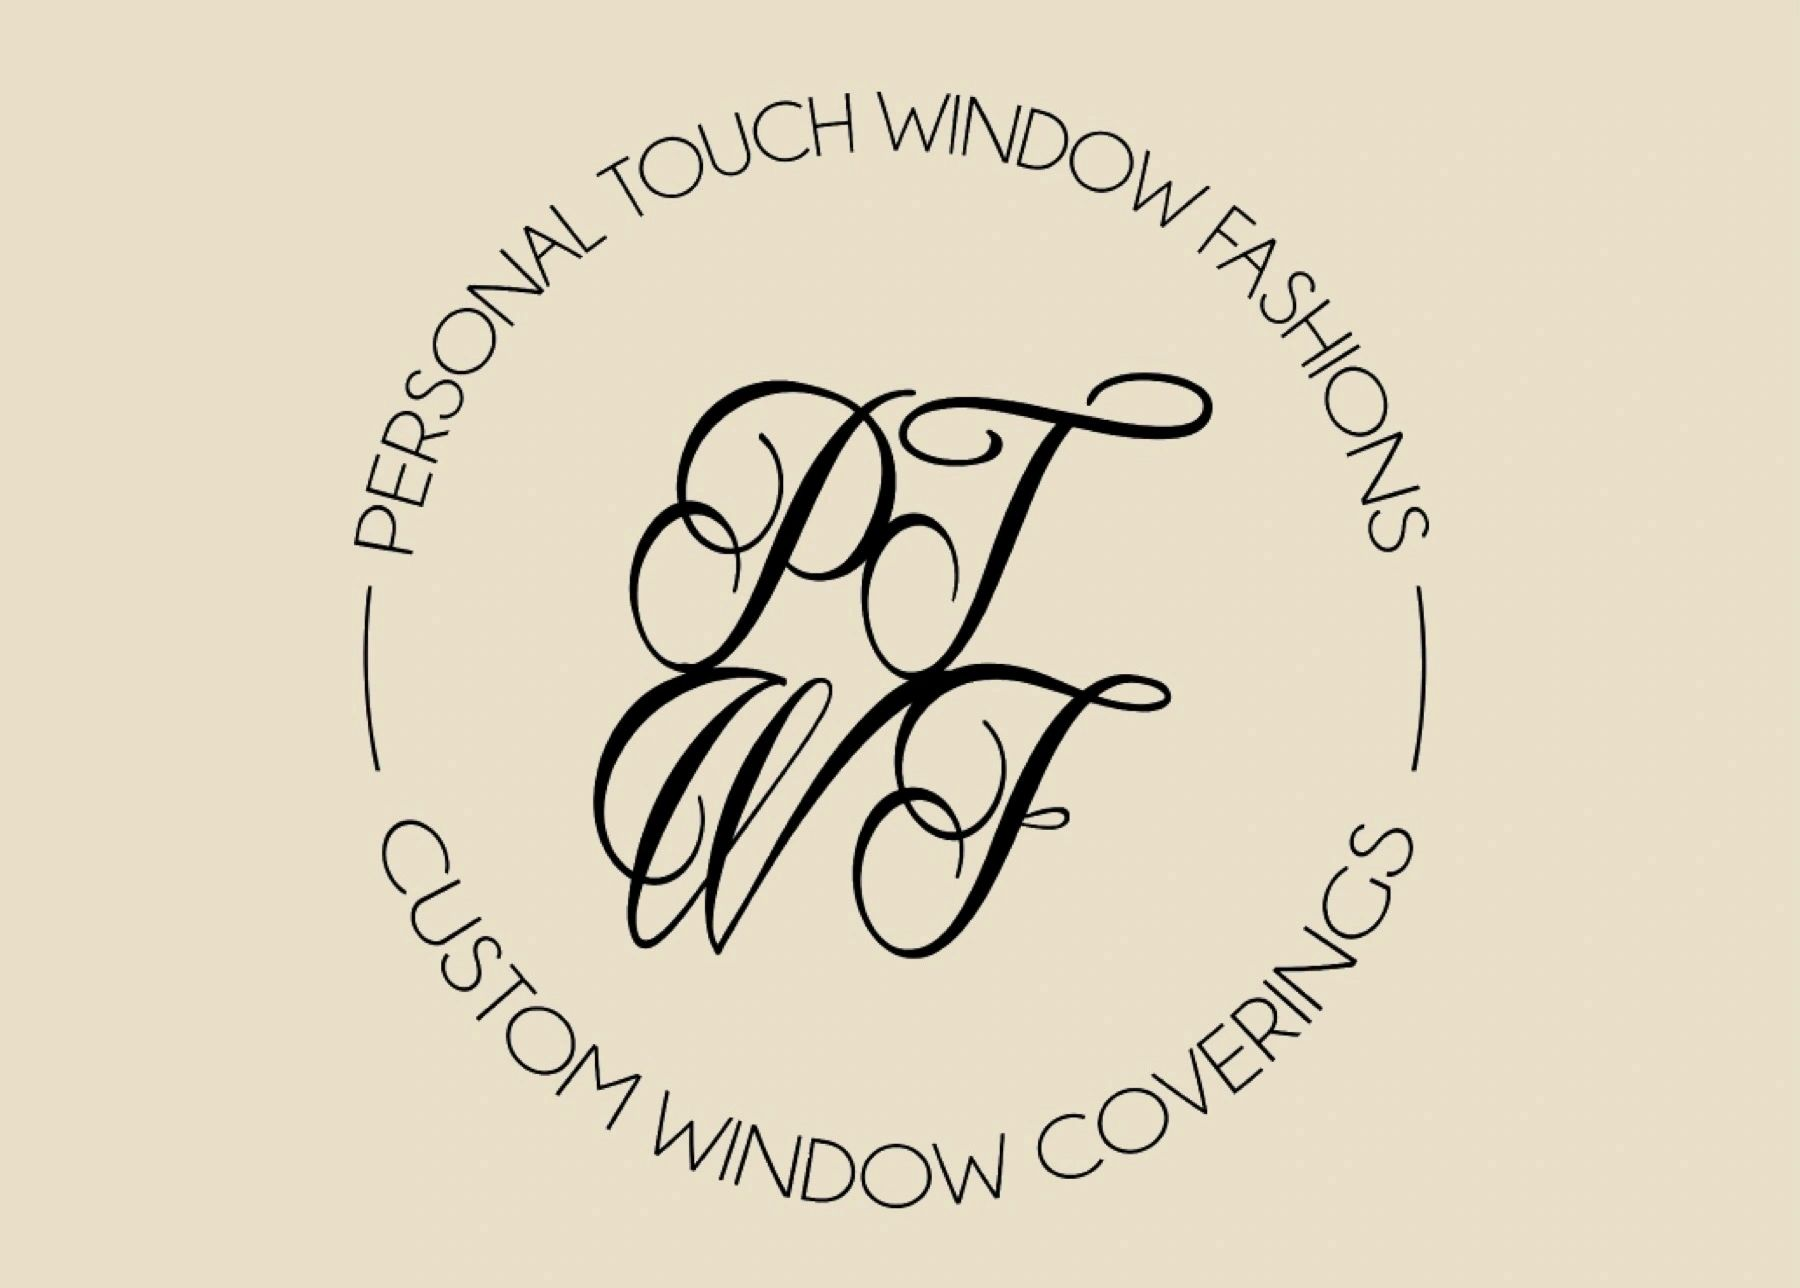 Personal Touch Window Fashions logo